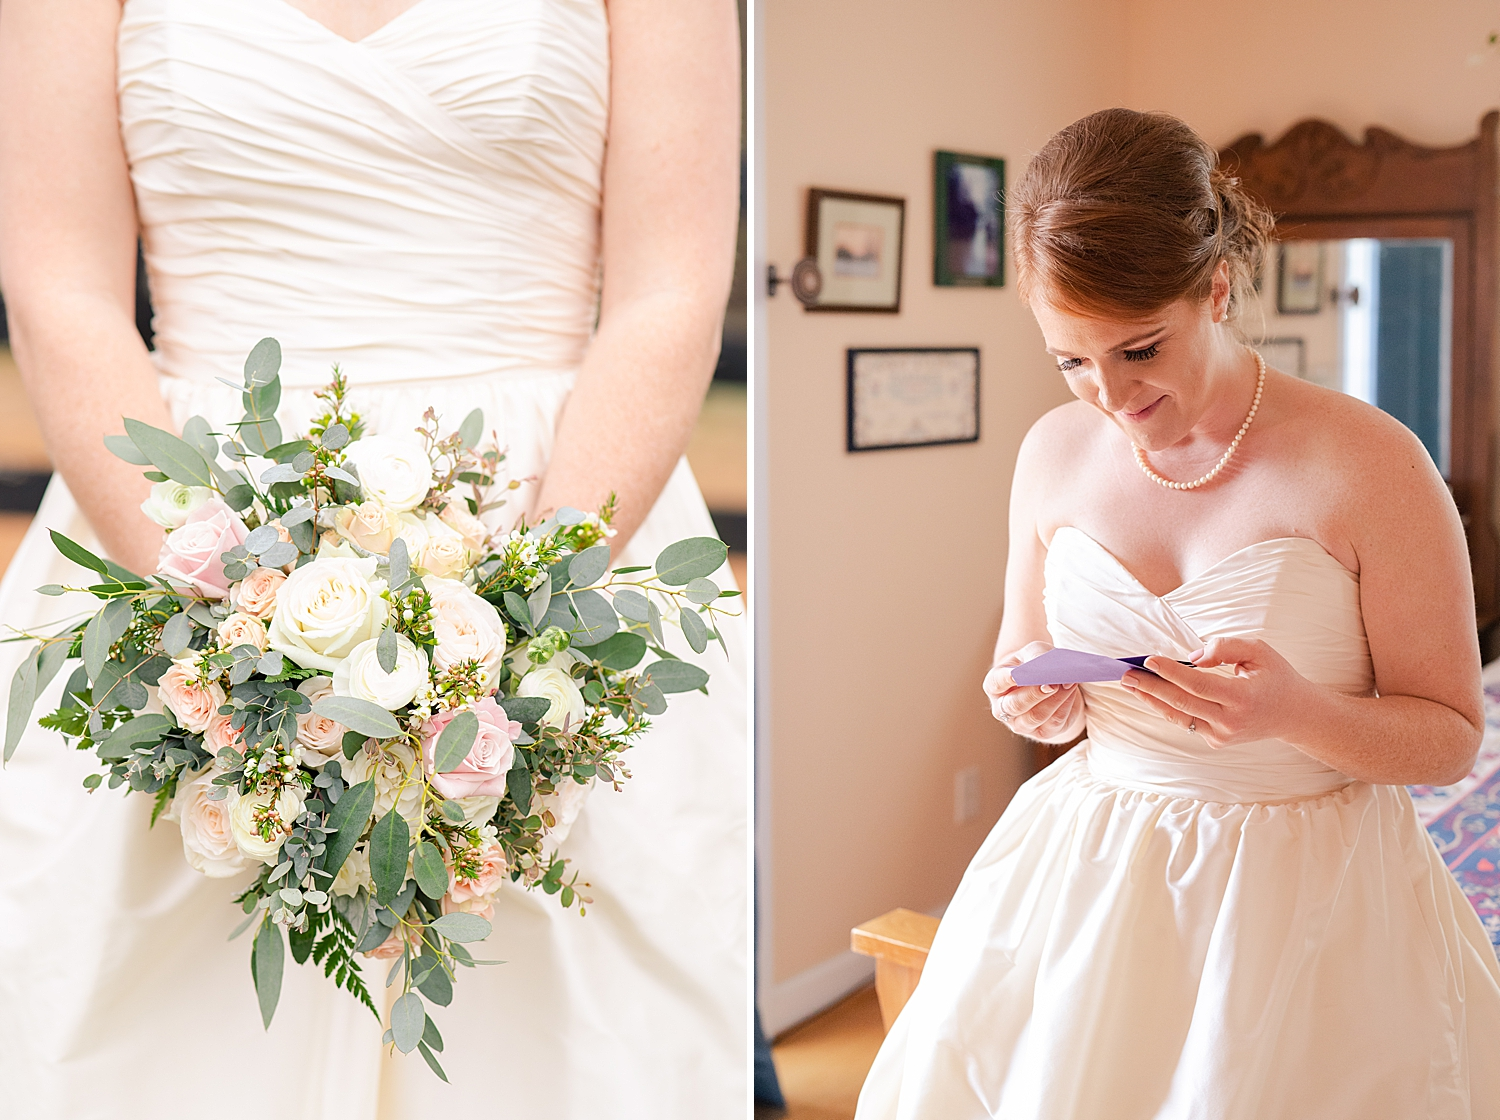 They traded love letters to read before the ceremony! How sweet is that?!